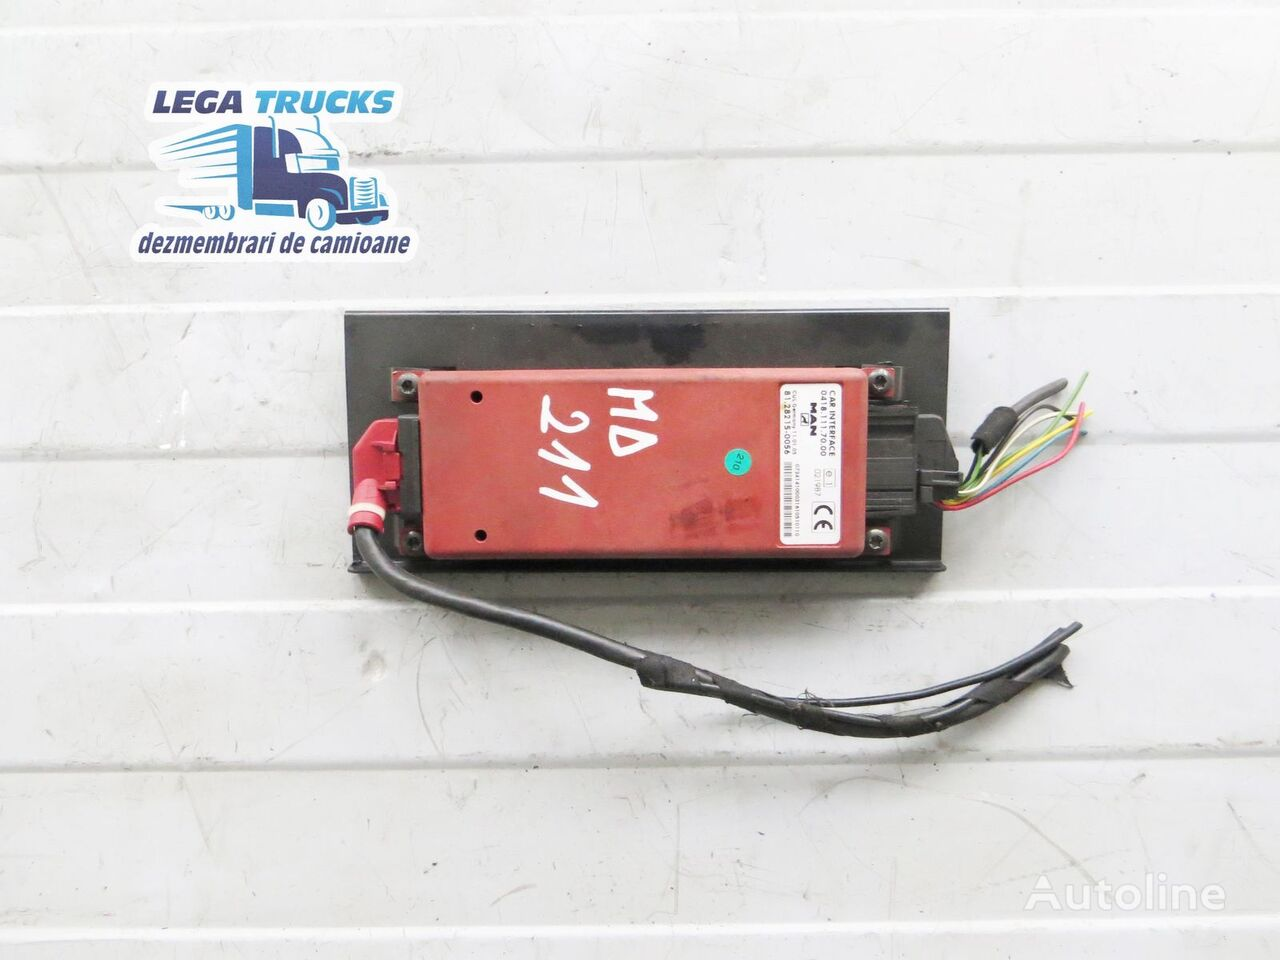 MAN Interfata camion 81.28215-0056 MD/211 control unit for tractor unit